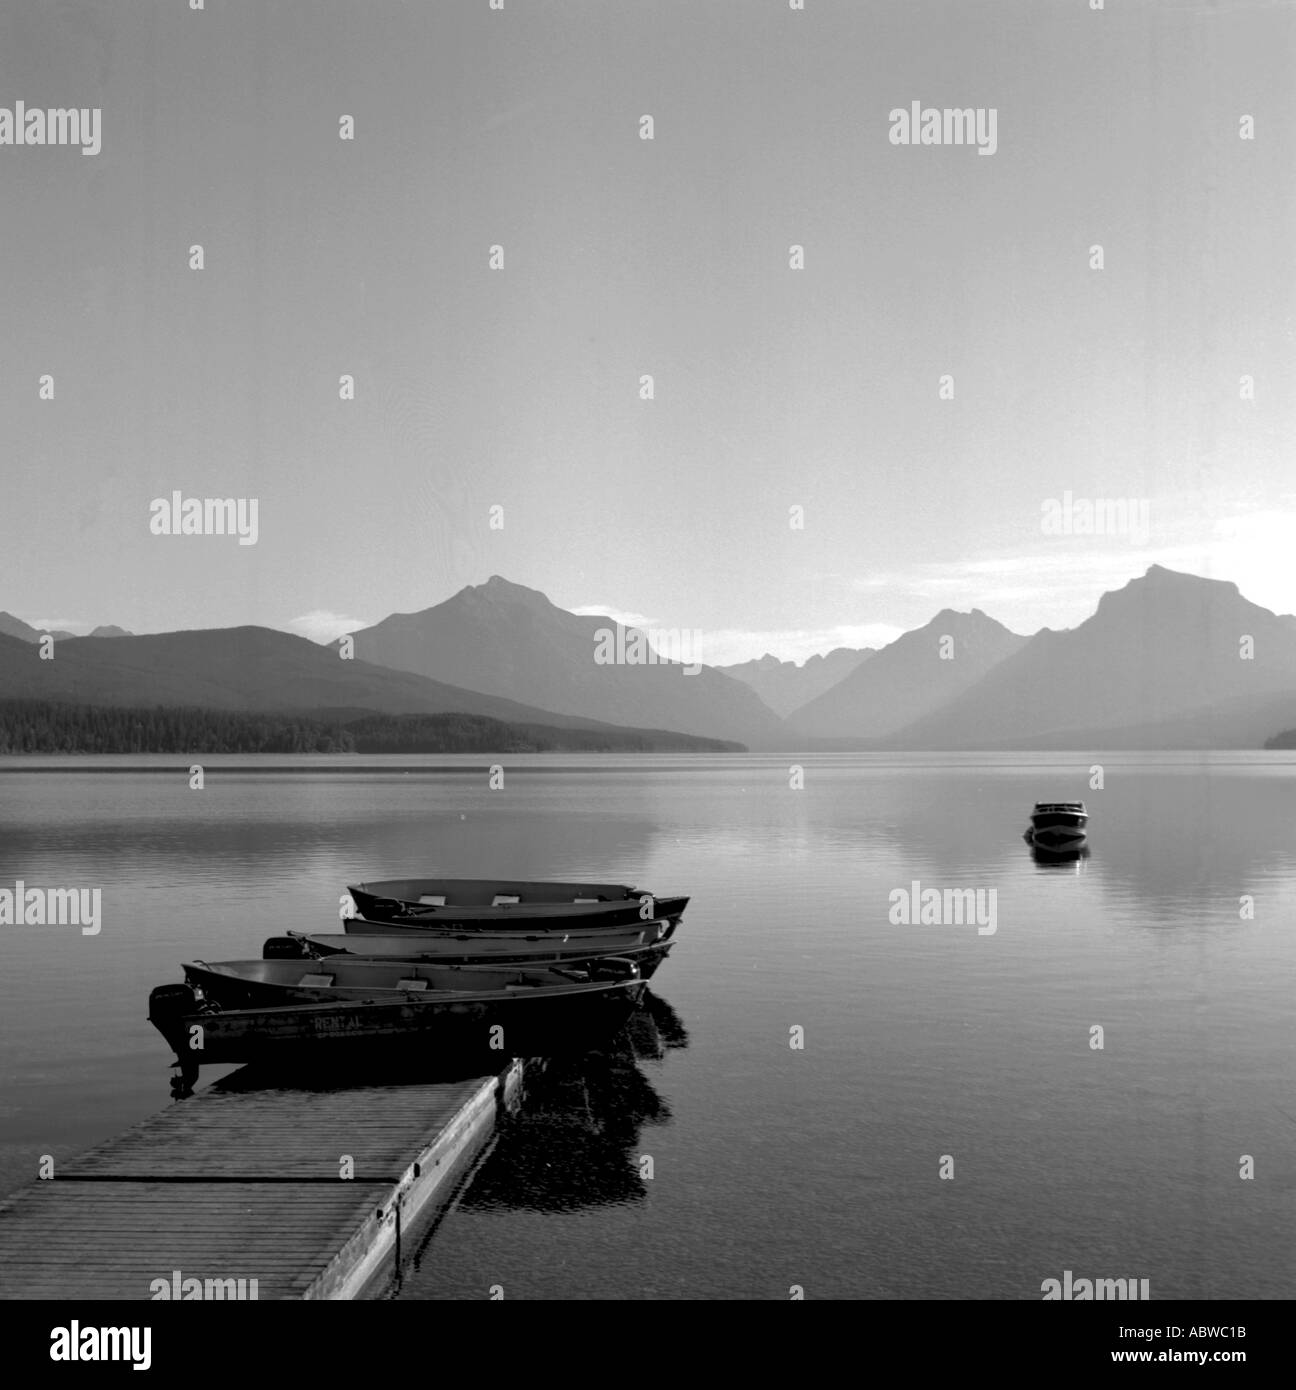 Black and white image of boats on a lake with mountains in the background. - Stock Image